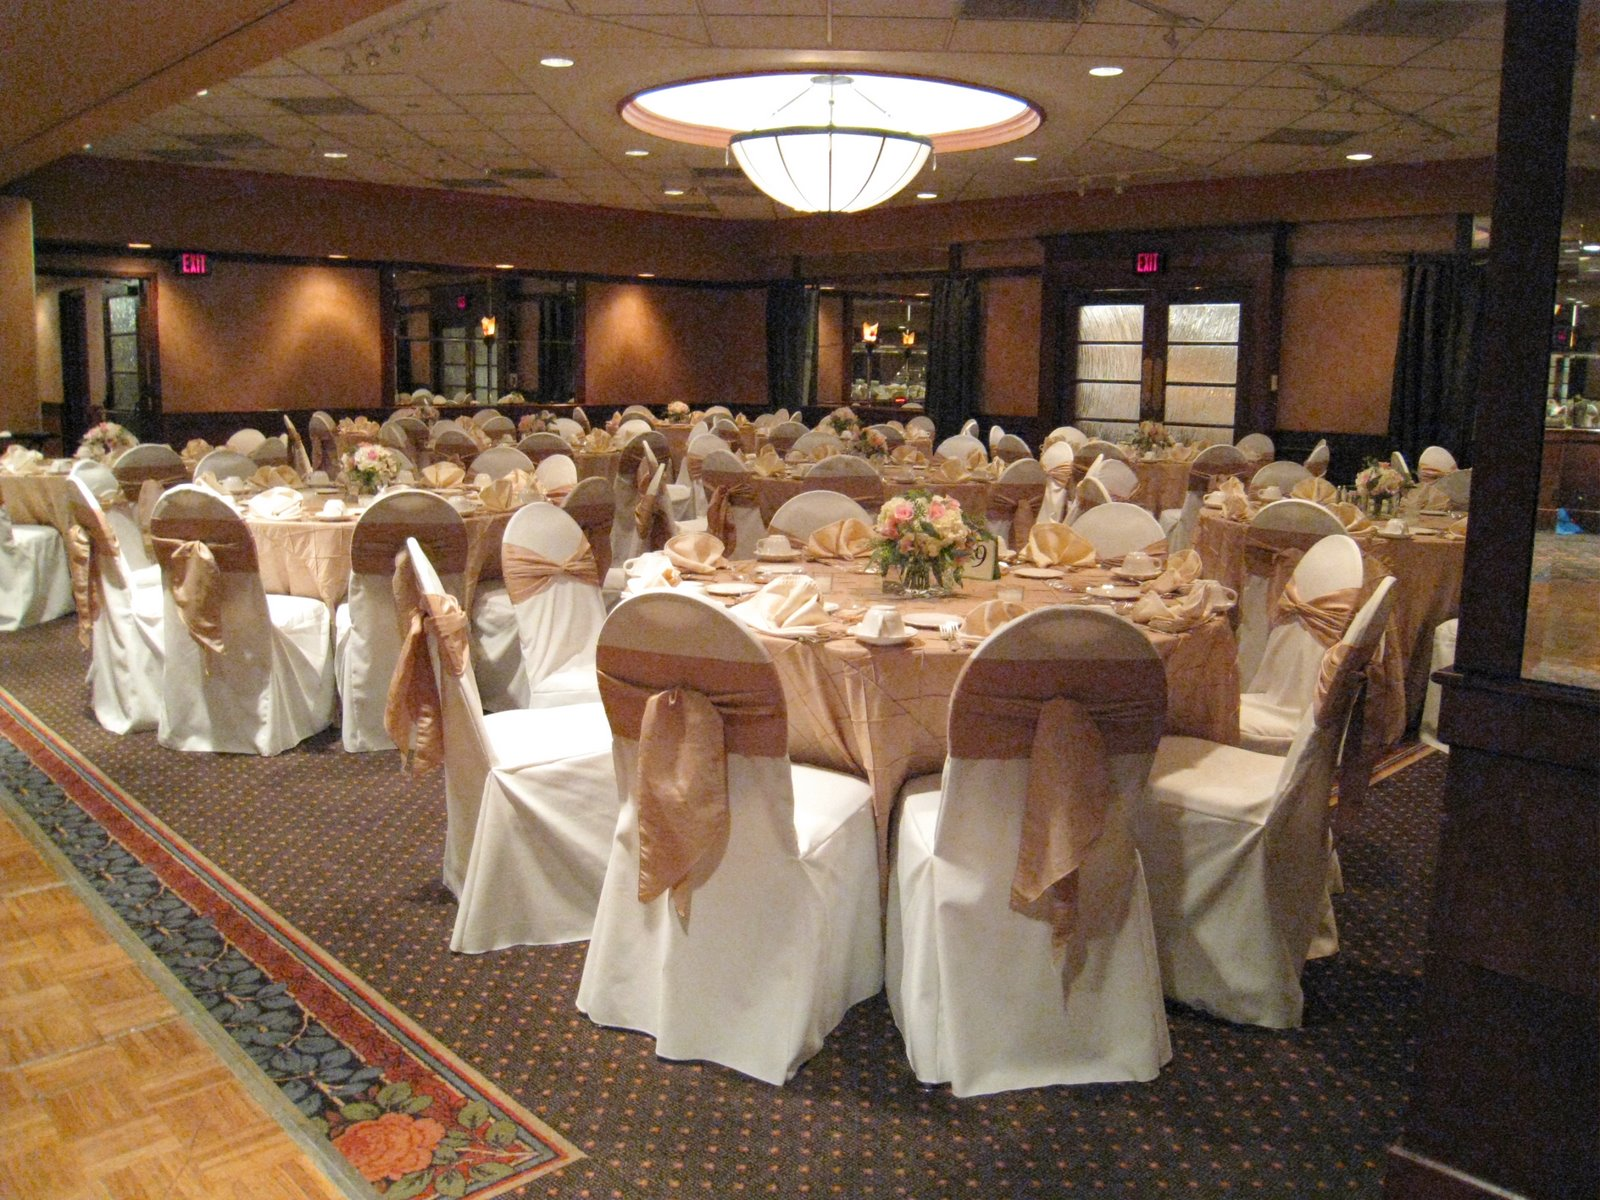 new chair designs: chair covers and sashes wallpapers